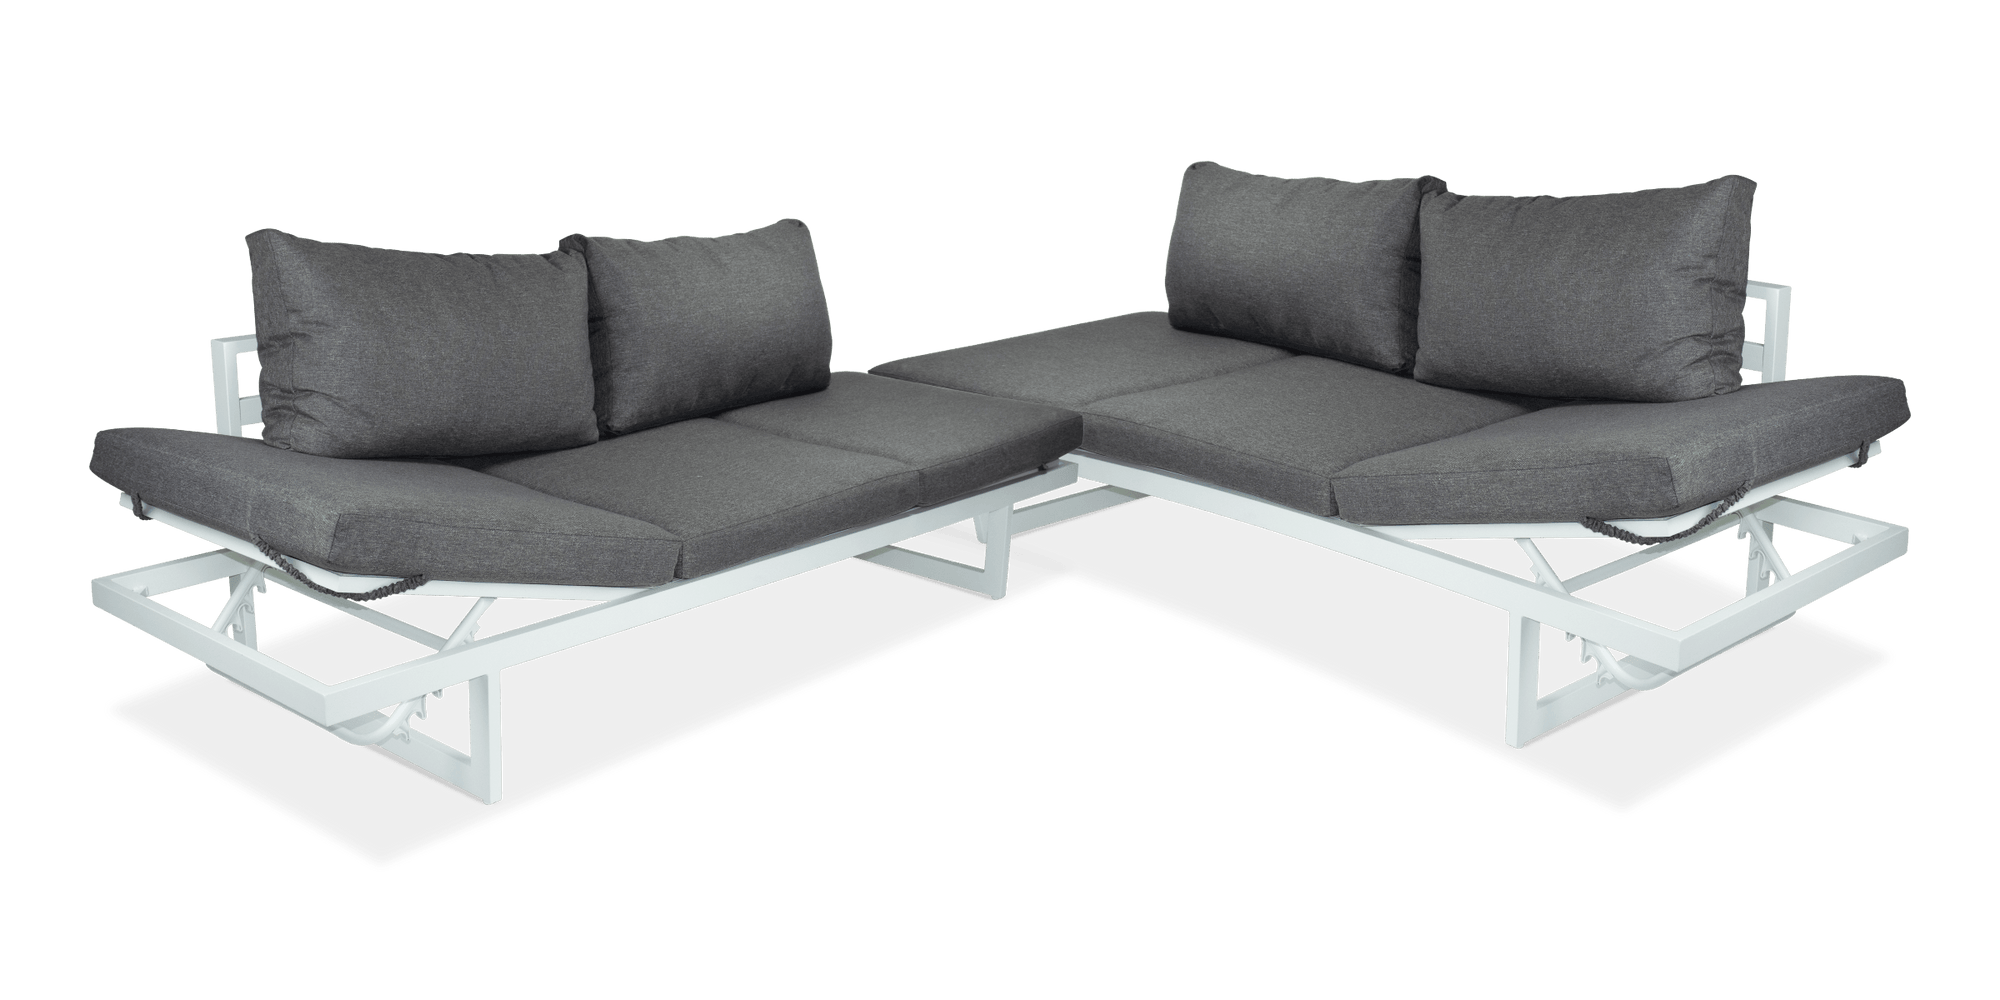 Milan Corner Set with Dual Sunlounger Functionality in Arctic White with Pebble Olefin Cushions